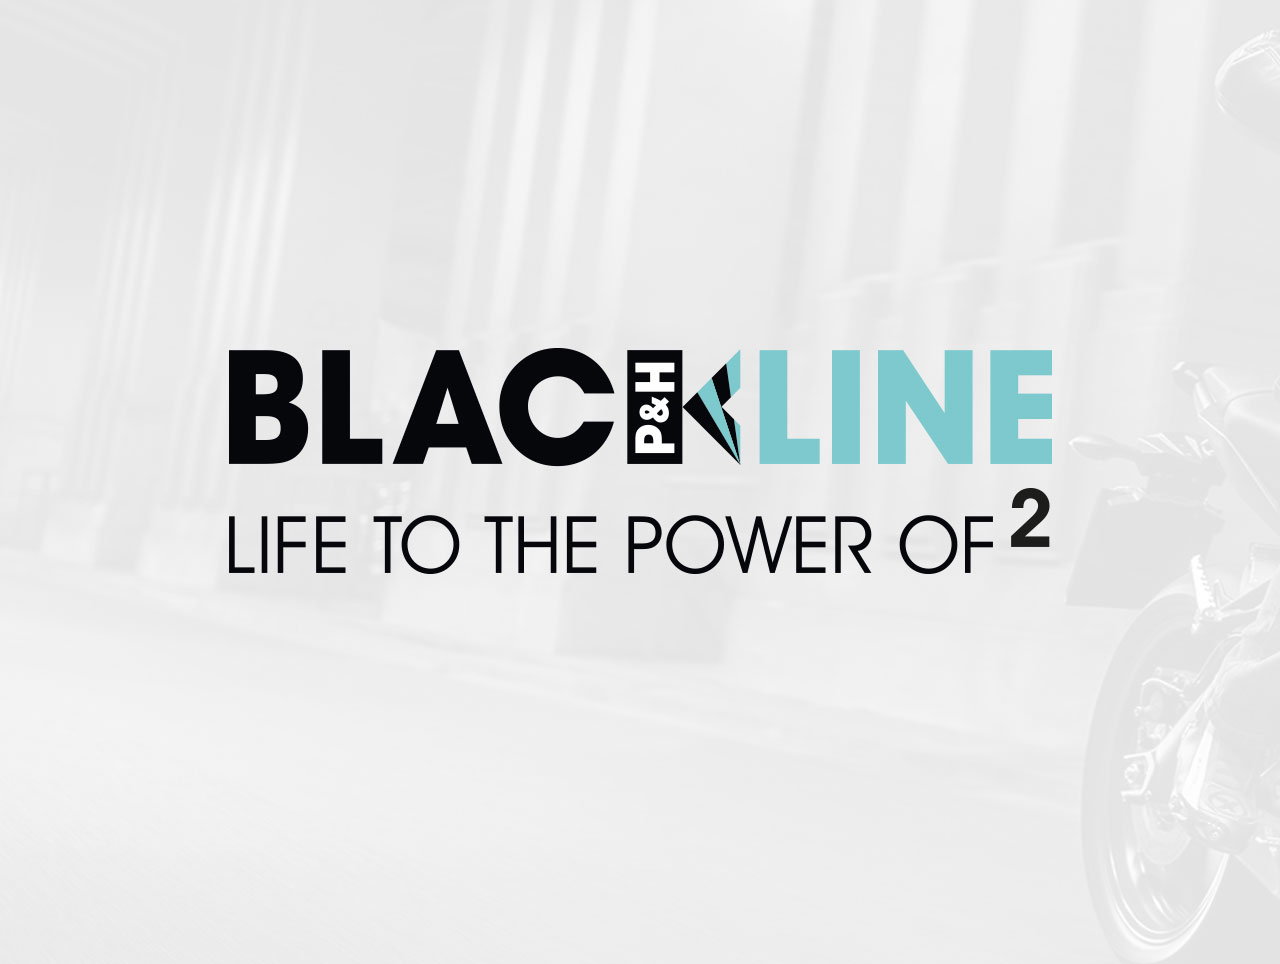 blackline motorcycles clothing brand design